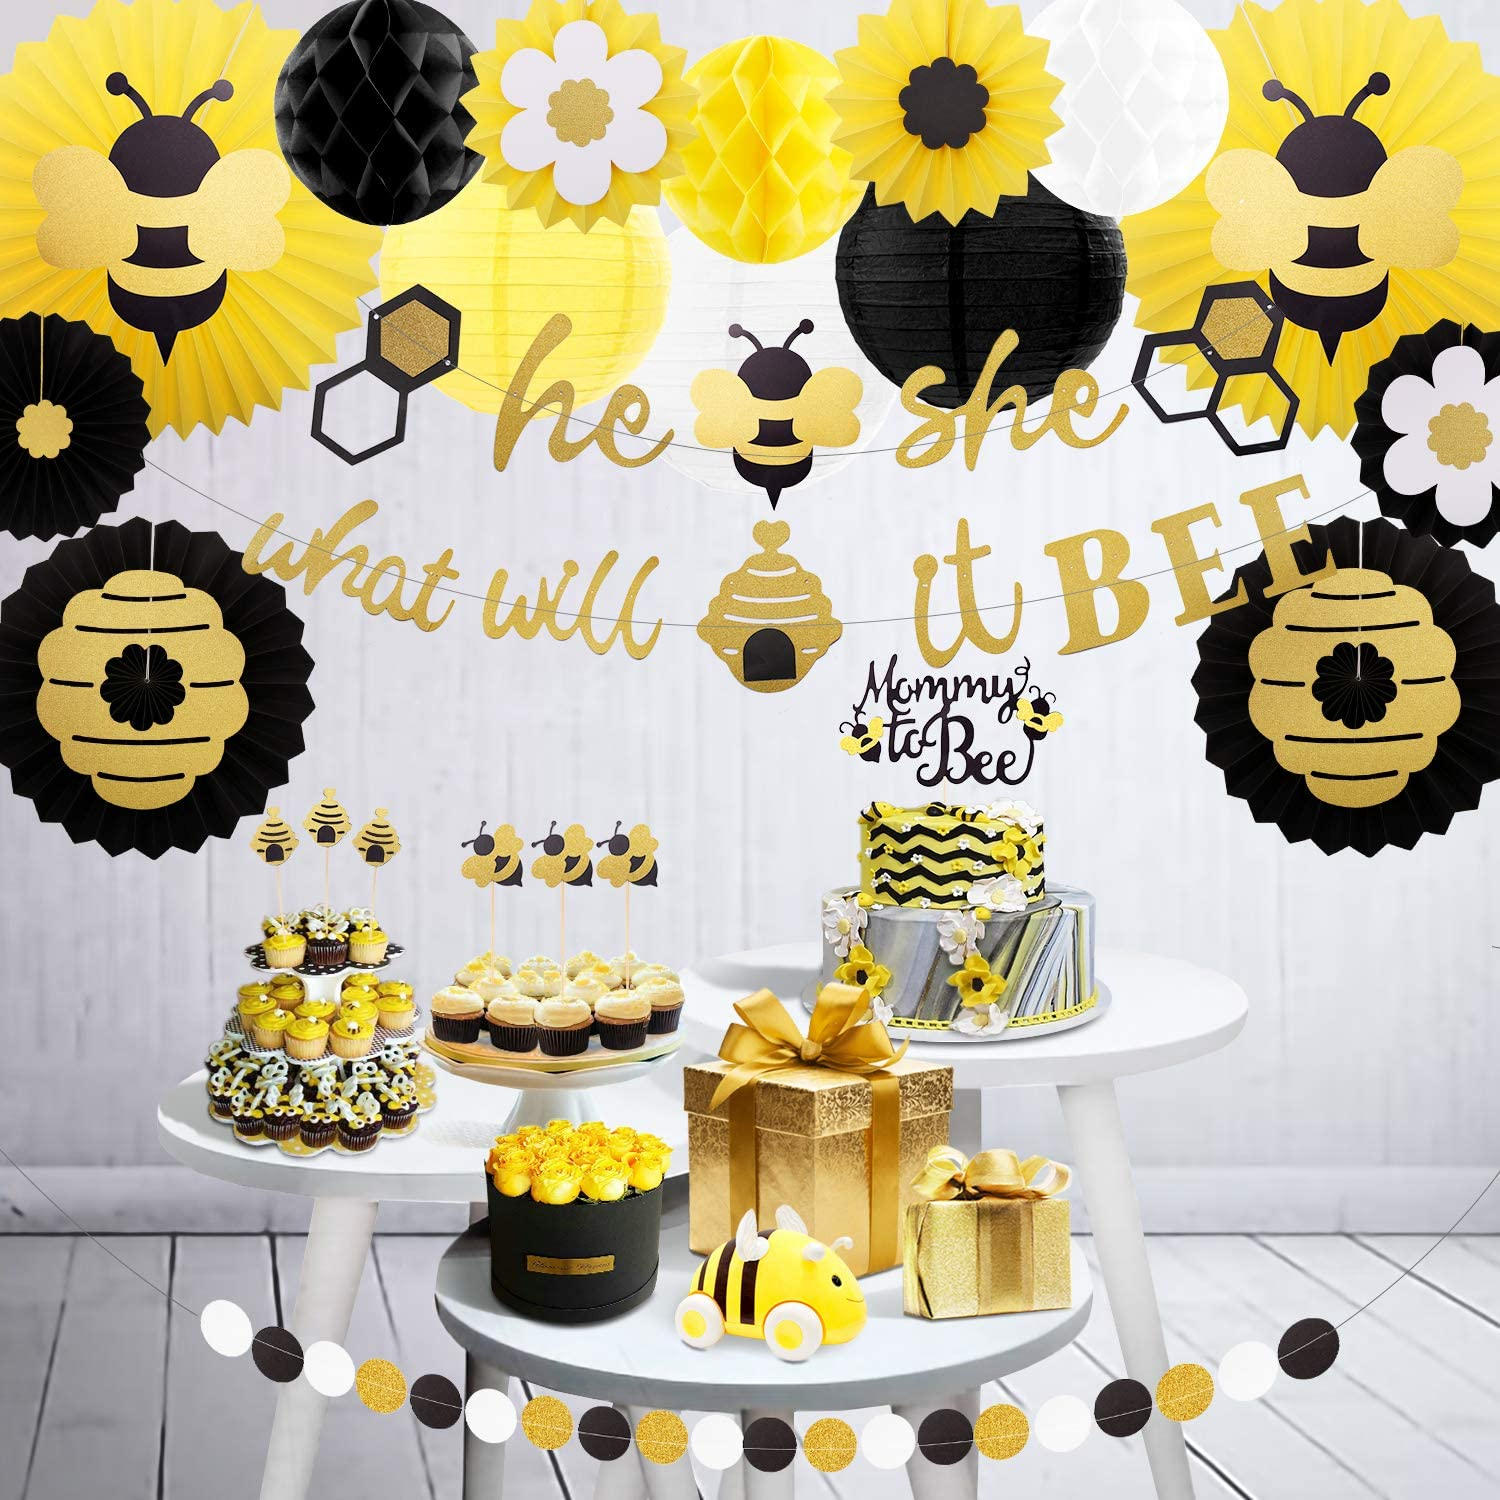 Let's Party, 24 Pcs Bee Party Decorations Theme for Gender Reveal 1st Birthday Bee Day, He or She What Will It Bee Banner, Bumblebee Baby Shower Hanging Glitter Paper Fans Lanterns Honeycomb Orbs Circle Dot Garland Banner Cake Topper in Black Yellow and Gold Colors Supplies Kit